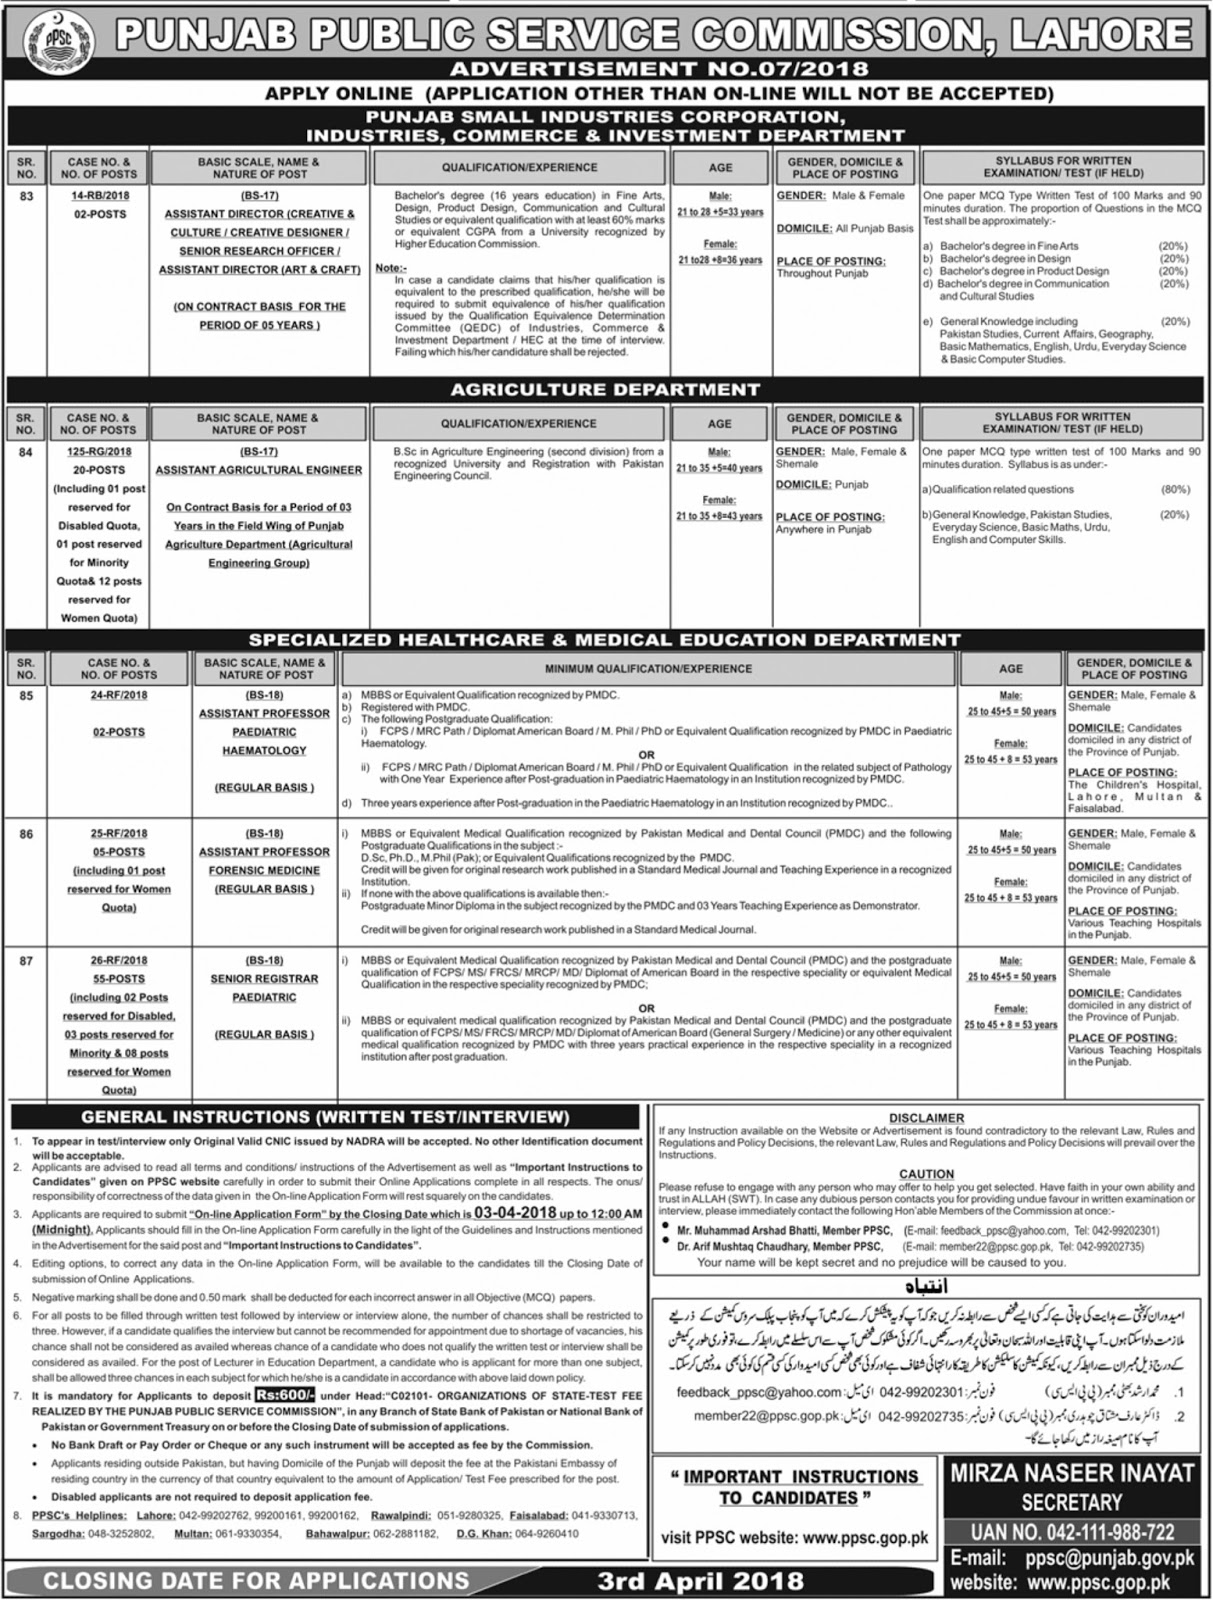 Jobs In Punjab Public Service Commission PPSC March 2018 - Apply Online